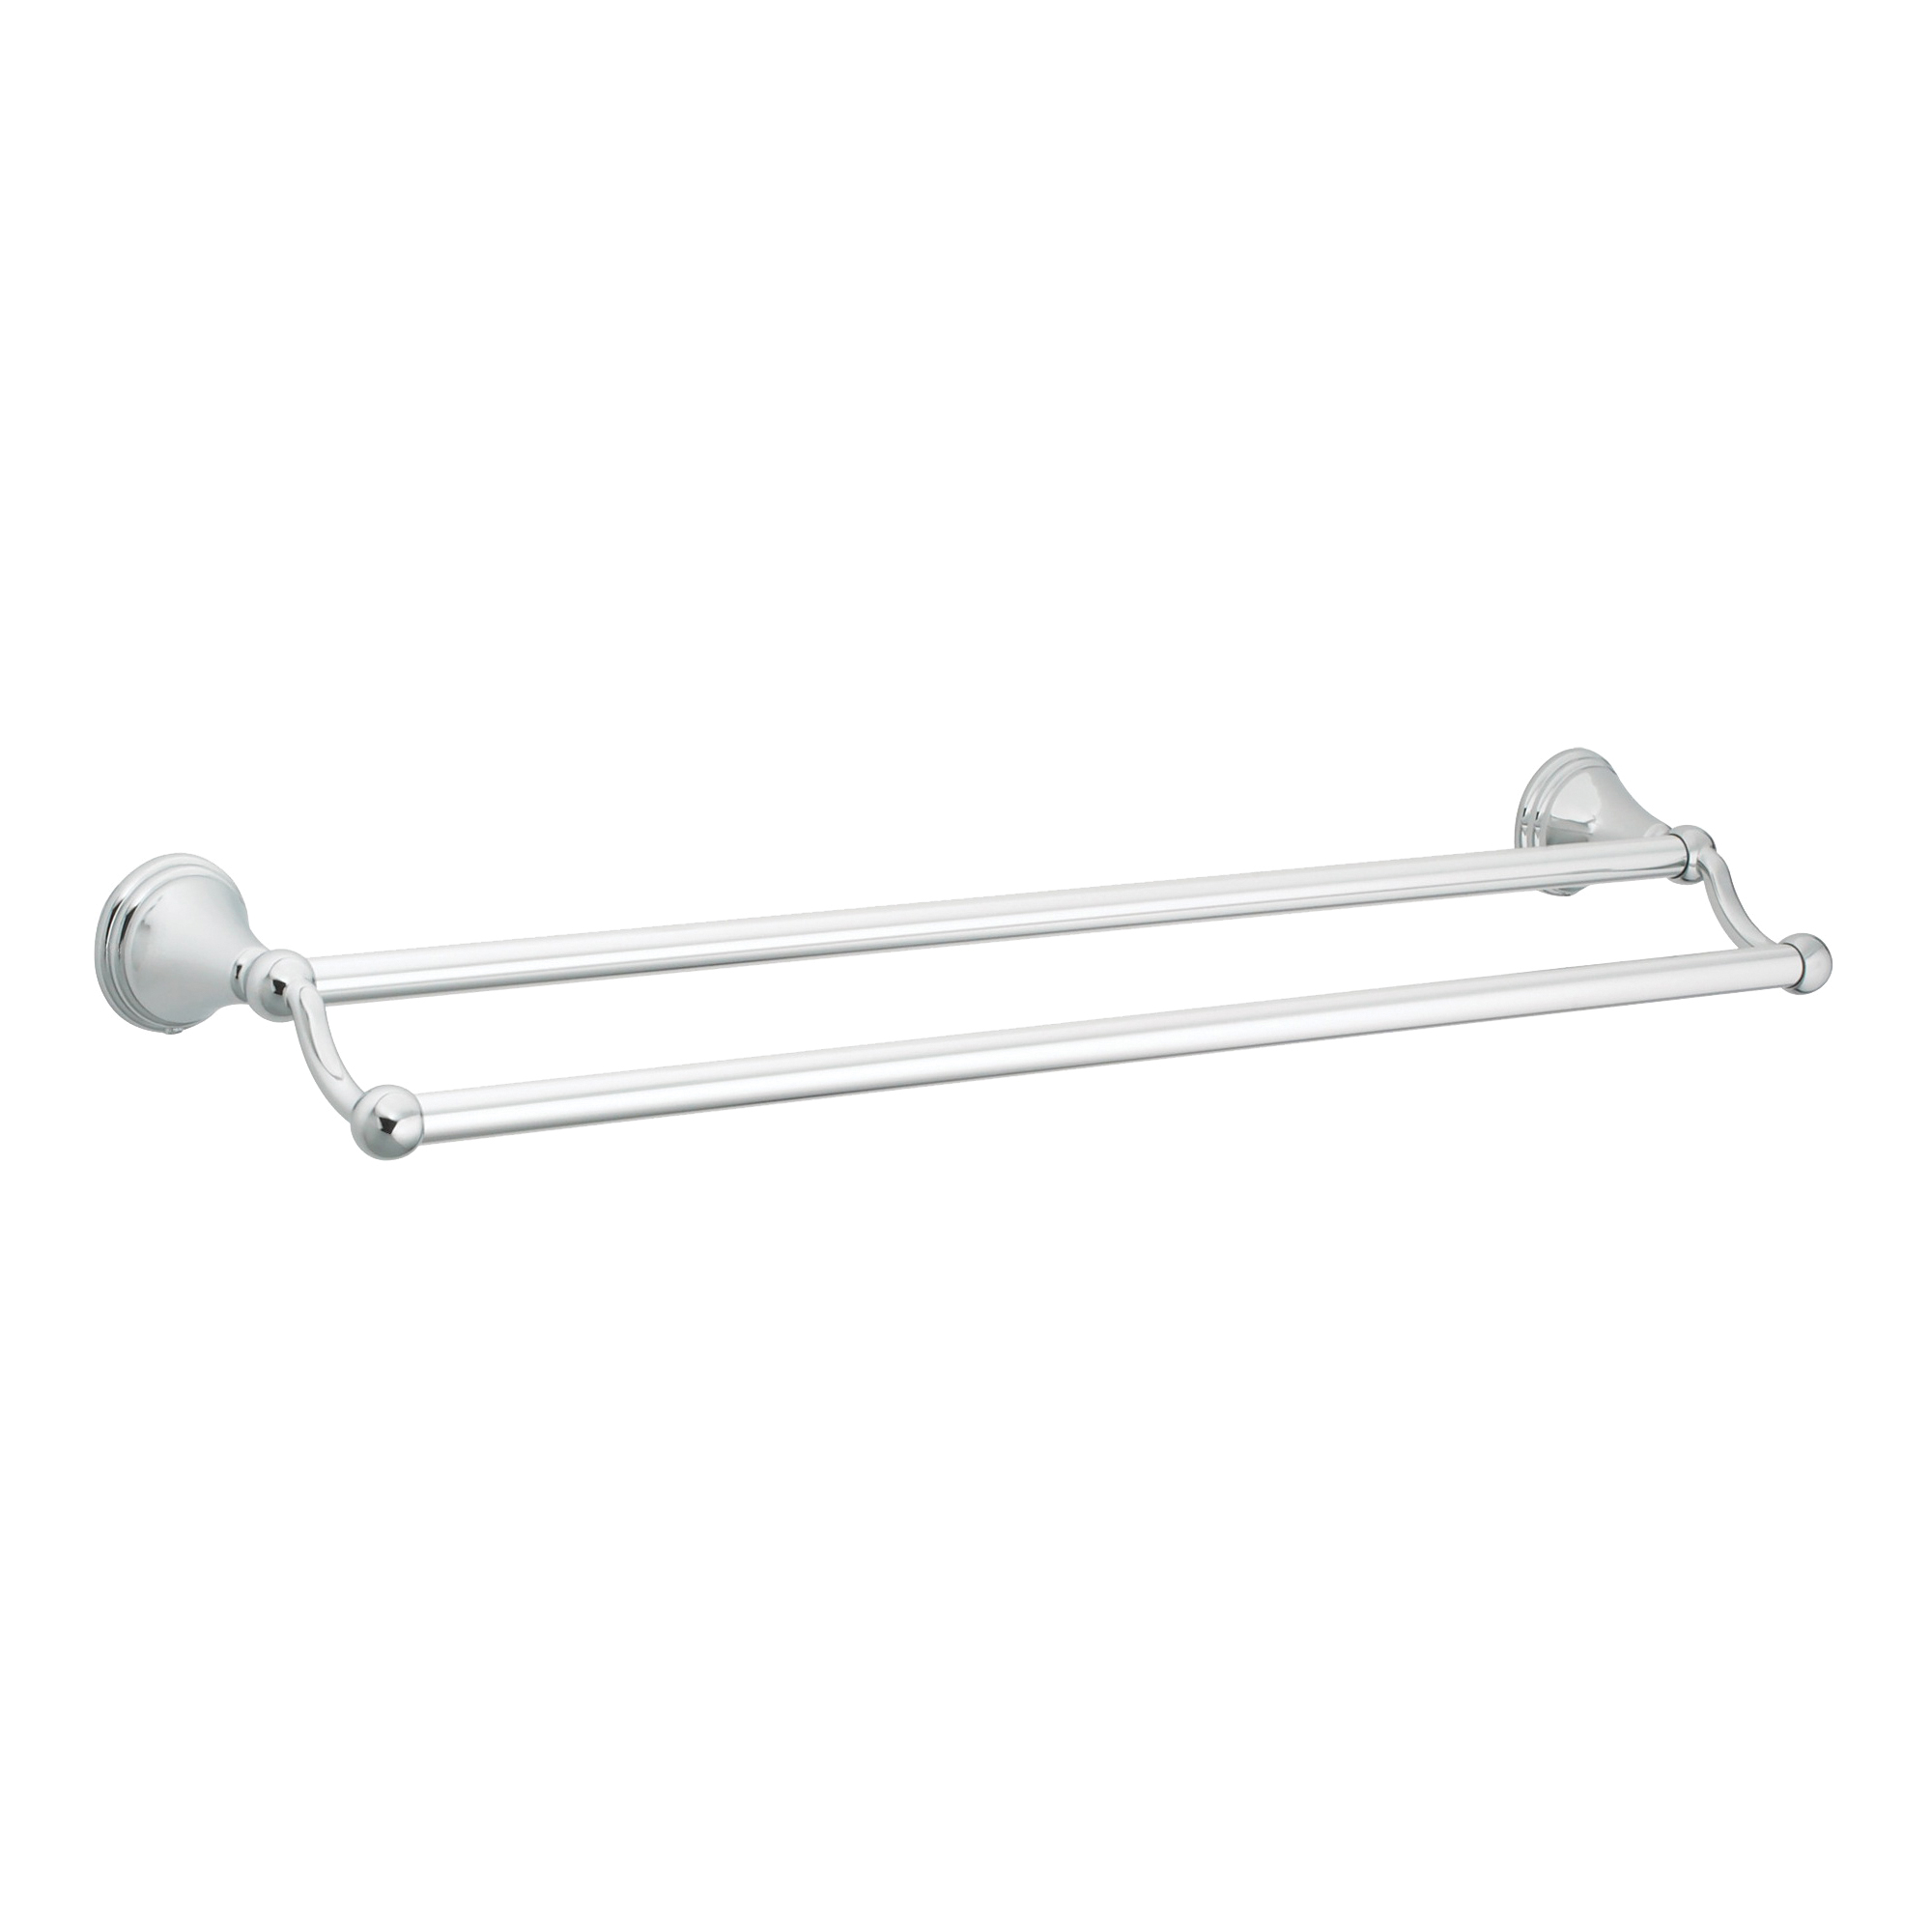 Picture of Moen DN8422CH Towel Bar, 24 in L Rod, Aluminum, Chrome, Surface Mounting